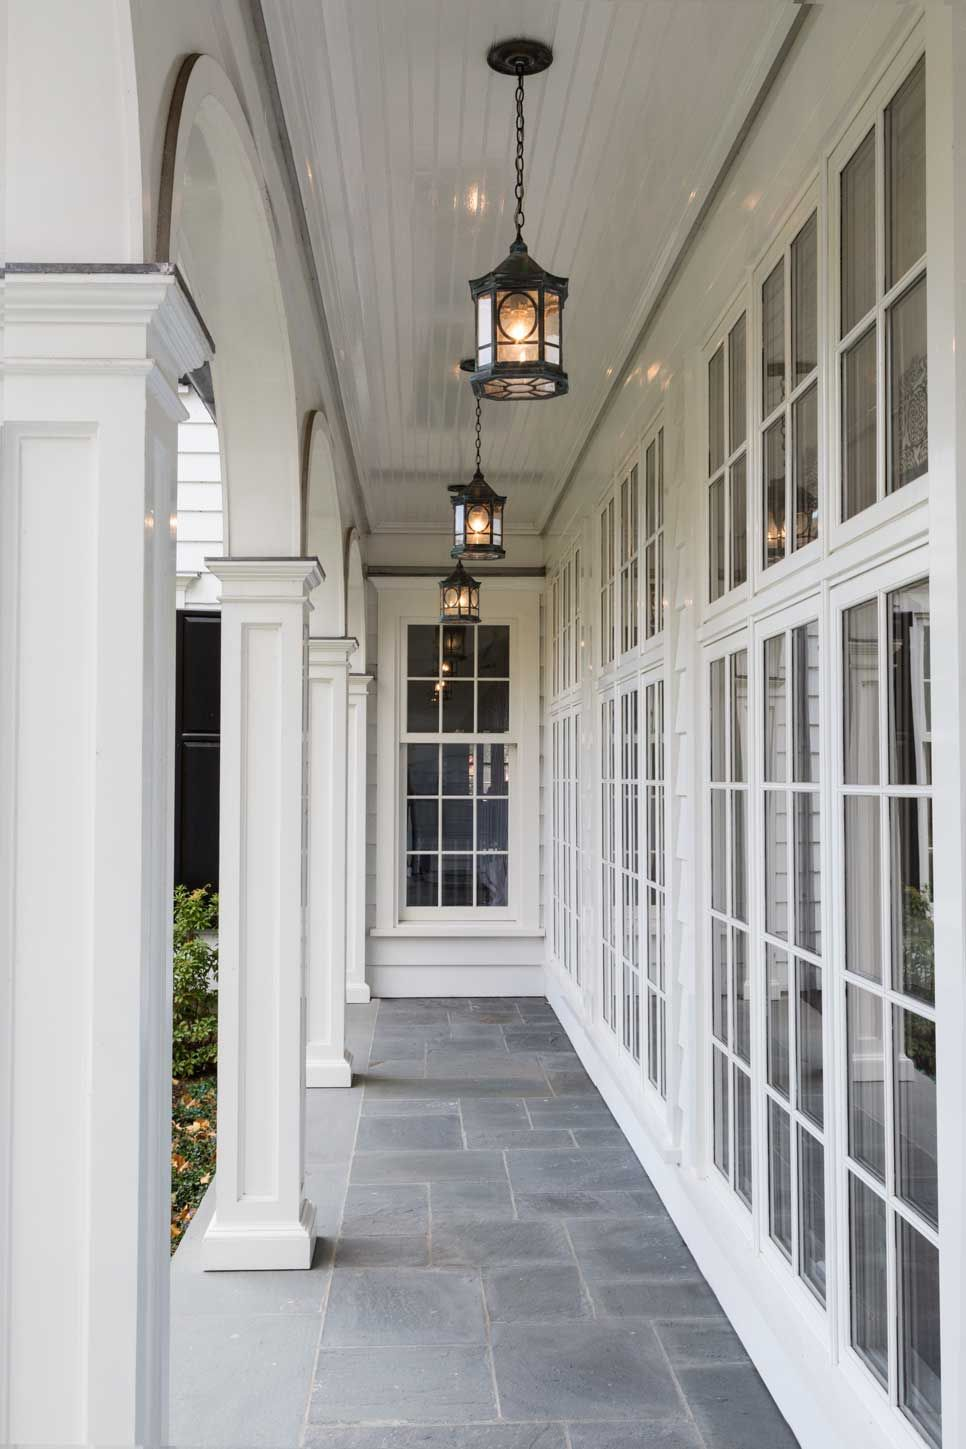 Lovely white porch. The natural light would be amazing